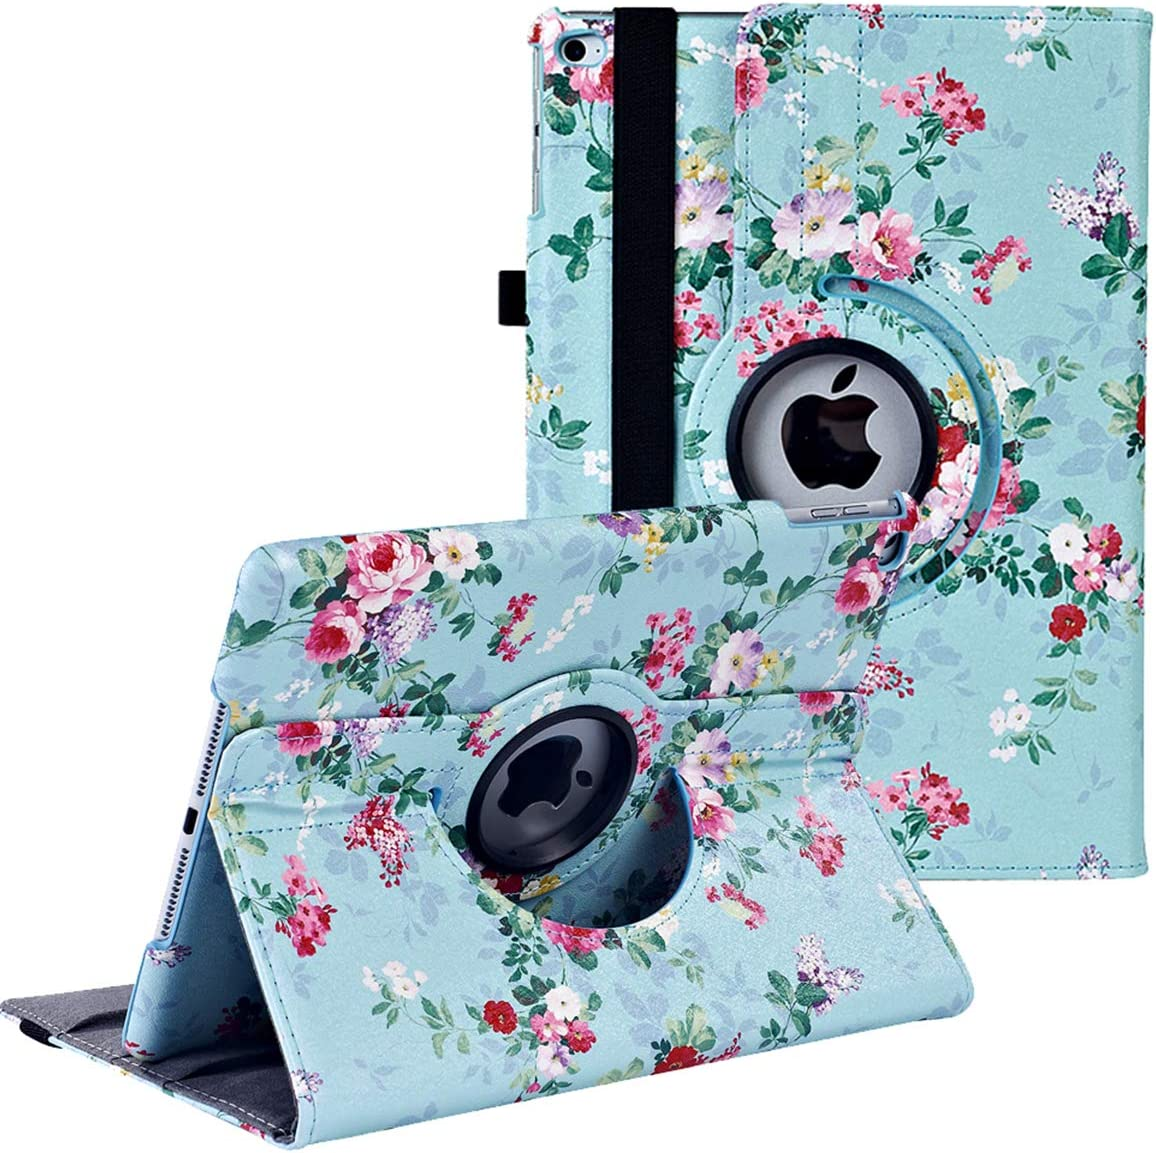 iPad 9.7 inch Case 2018 2017/ iPad Air Case - 360 Degree Rotating Stand Protective Cover Smart Case with Auto Sleep/Wake for Apple iPad 5th/6th Generation (Green Flower)